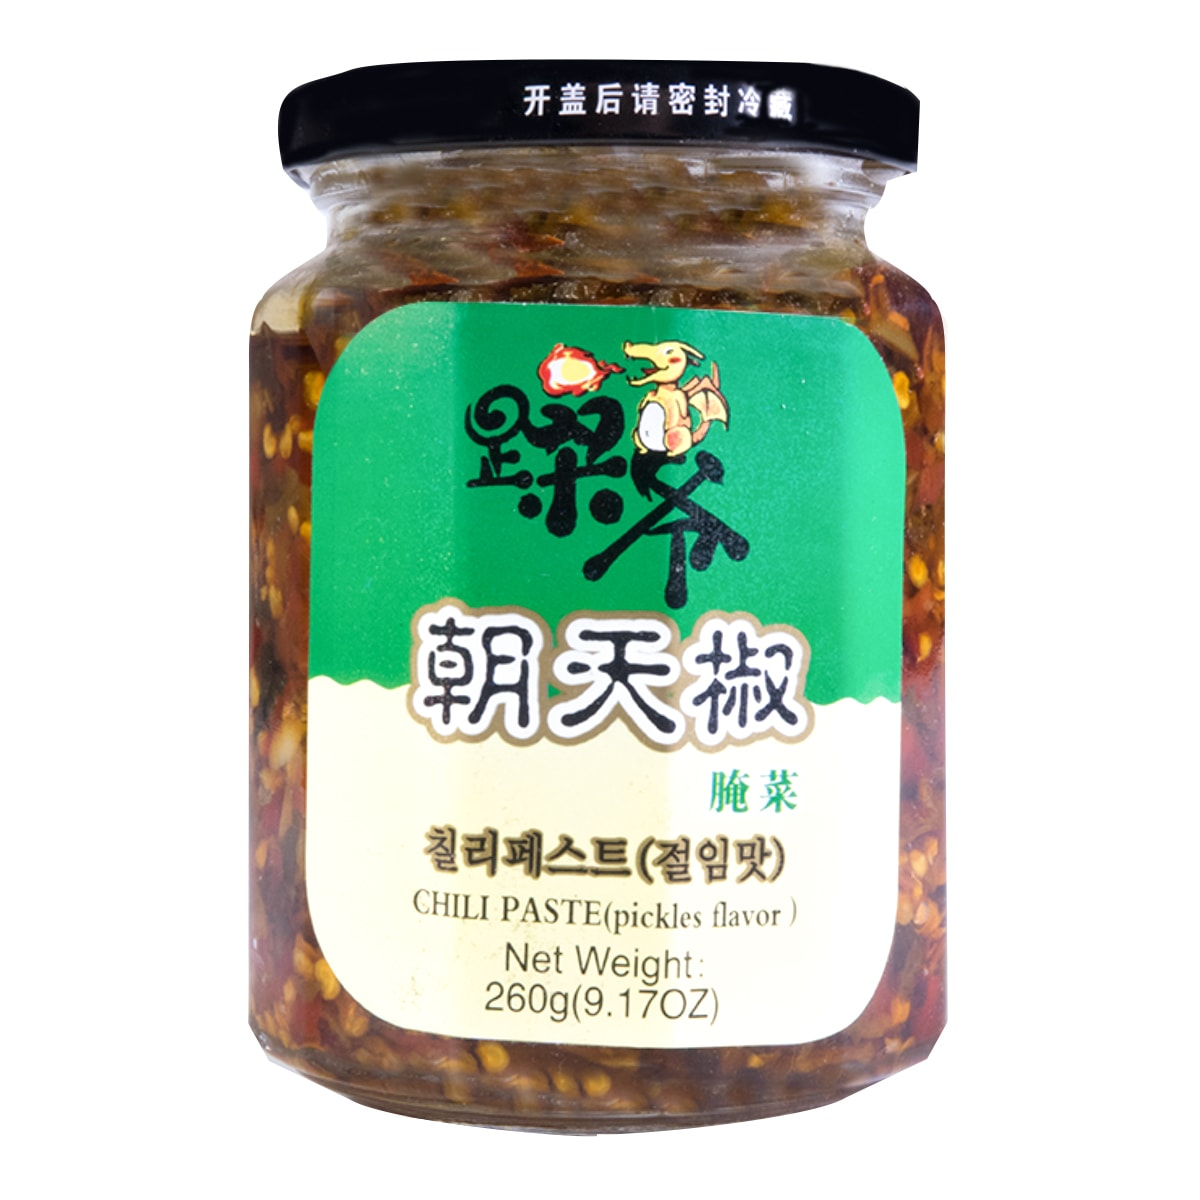 SAOYE Spicy Chili Hot Sauce Pickles Flavor 260g